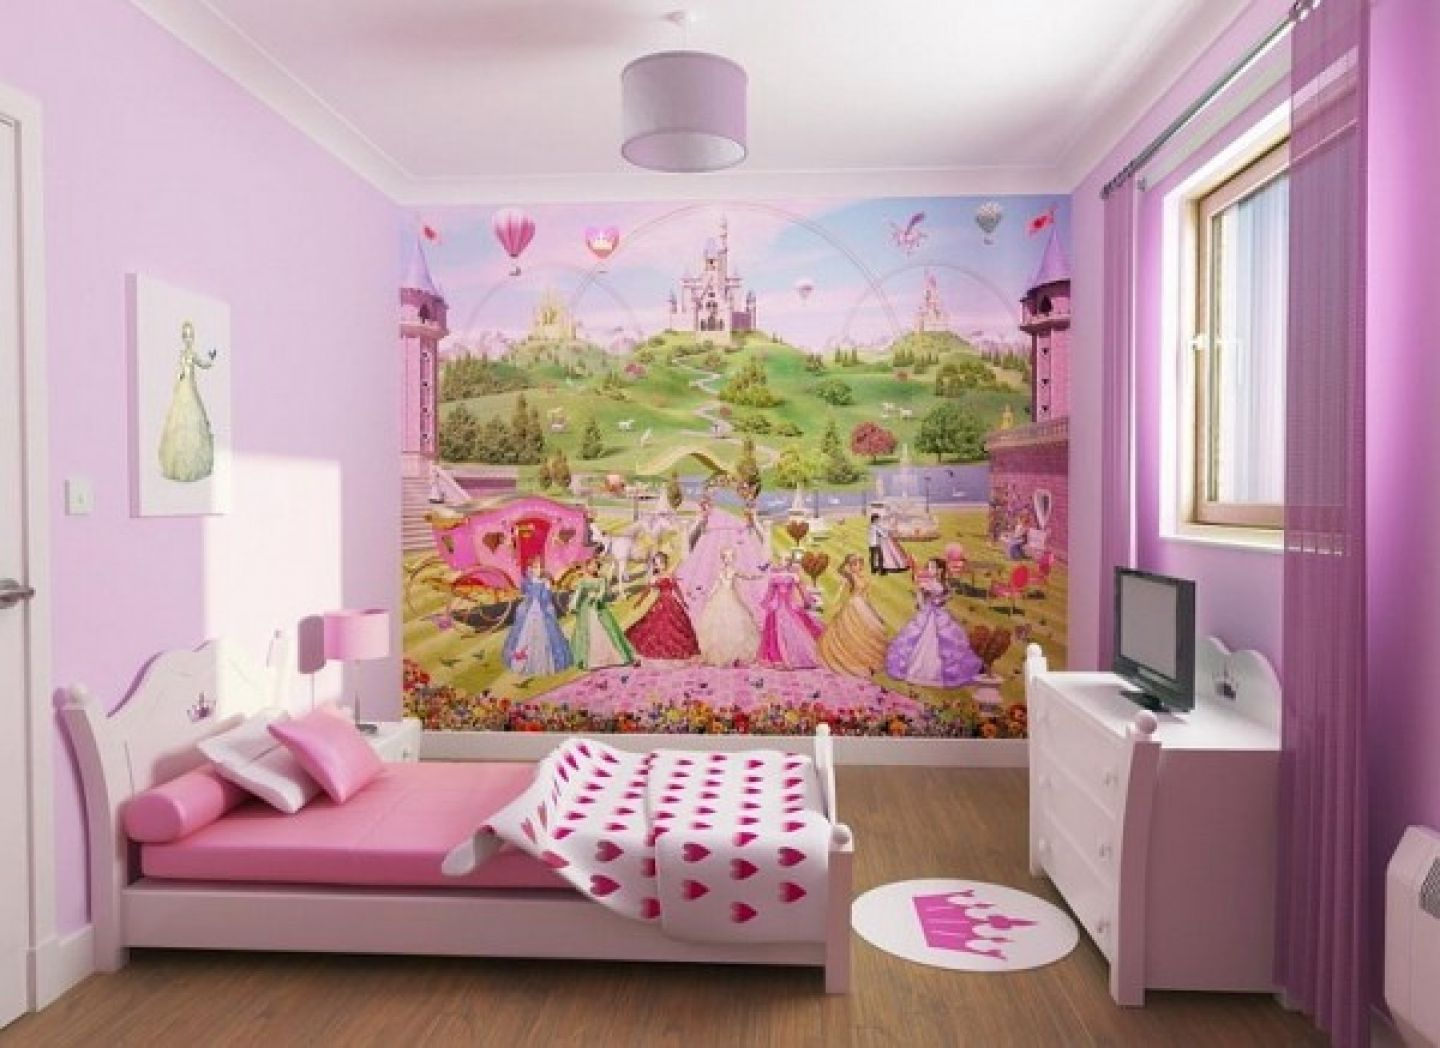 Girls Bedroom Decorating Ideas Inspiration Girls' Bedroom Style  Bedrooms Small Bedroom Decorating And Room Decorating Inspiration